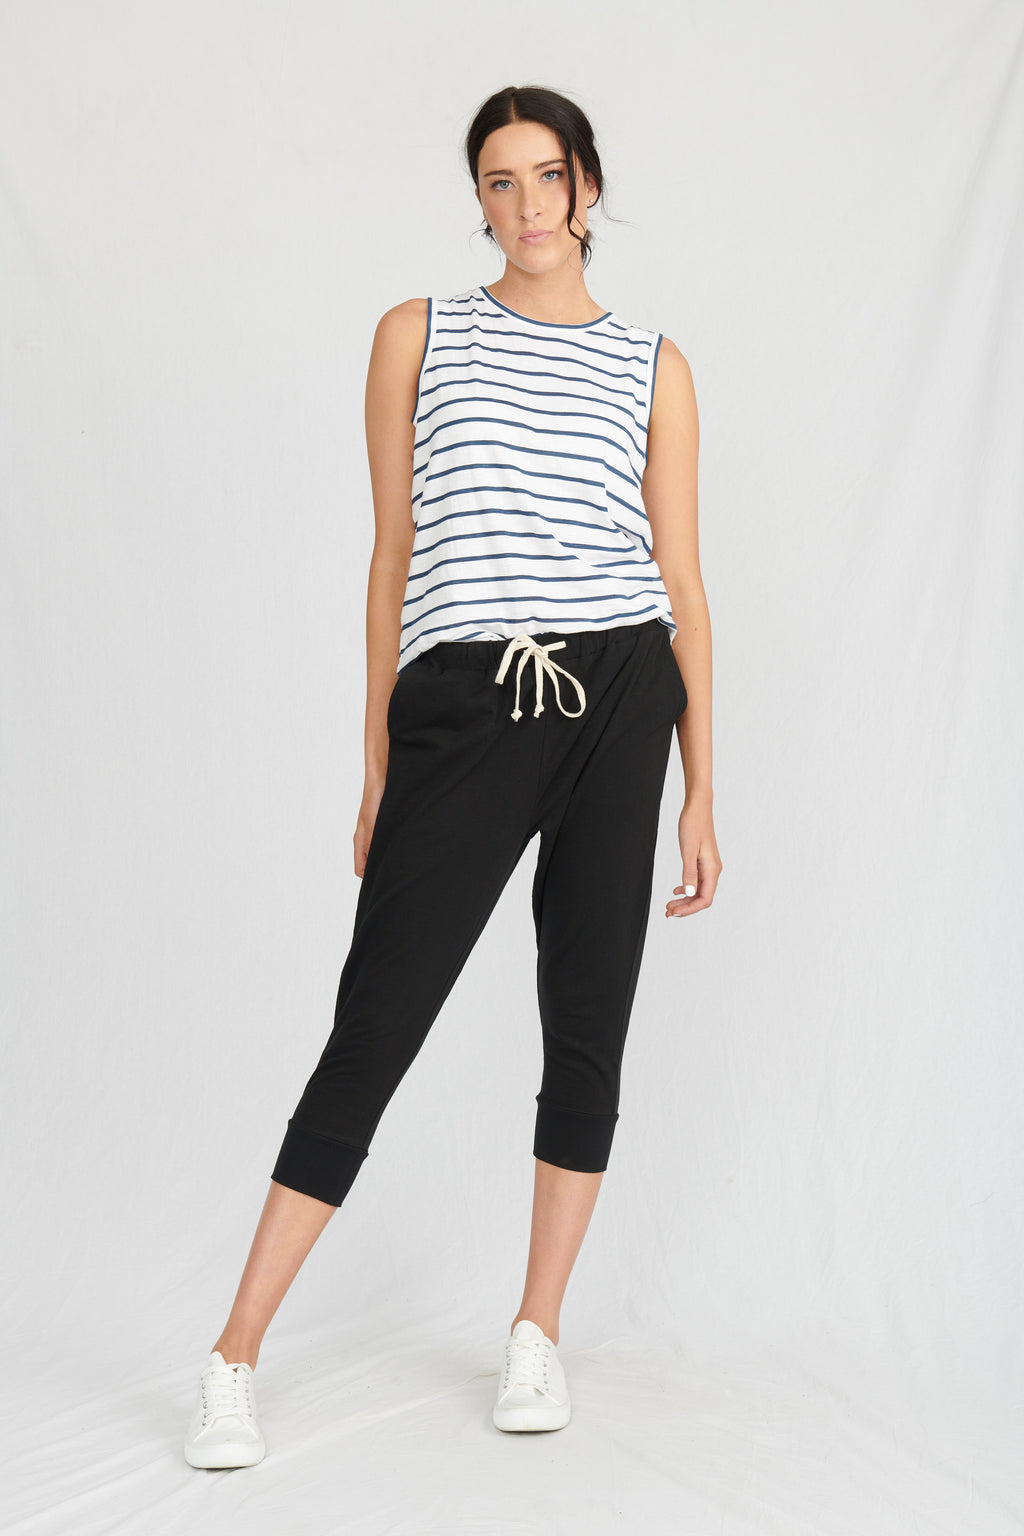 Lulu Organics Cotton Essentials - Santa Monica Pant Black